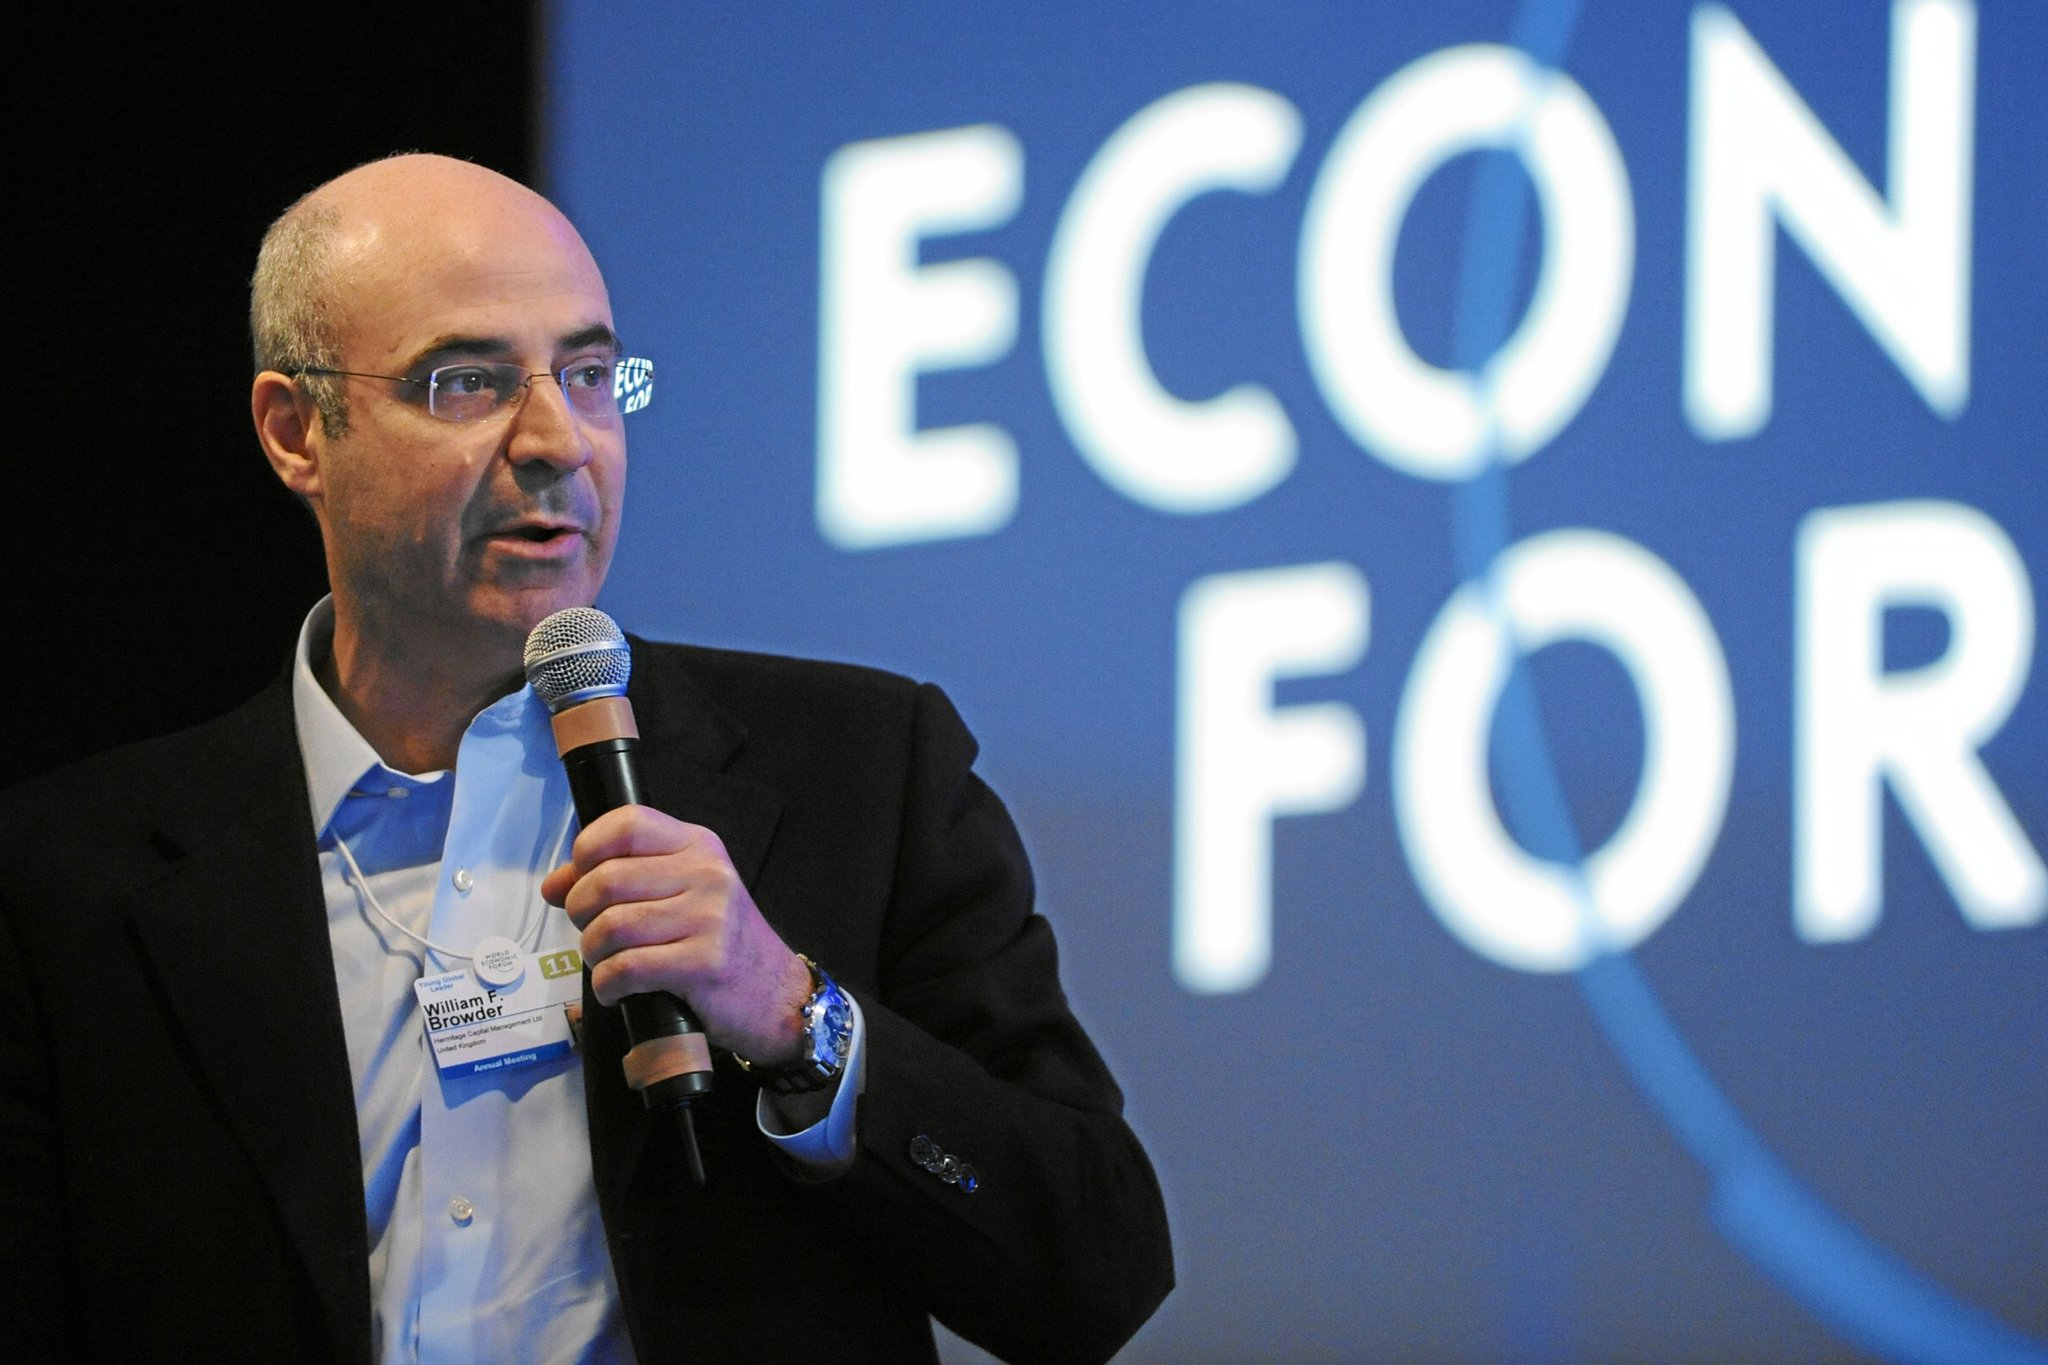 Вильям Браудер, автор: World Economic Forum from Cologny, Switzerland, лицензия: CC BY SA 2.0